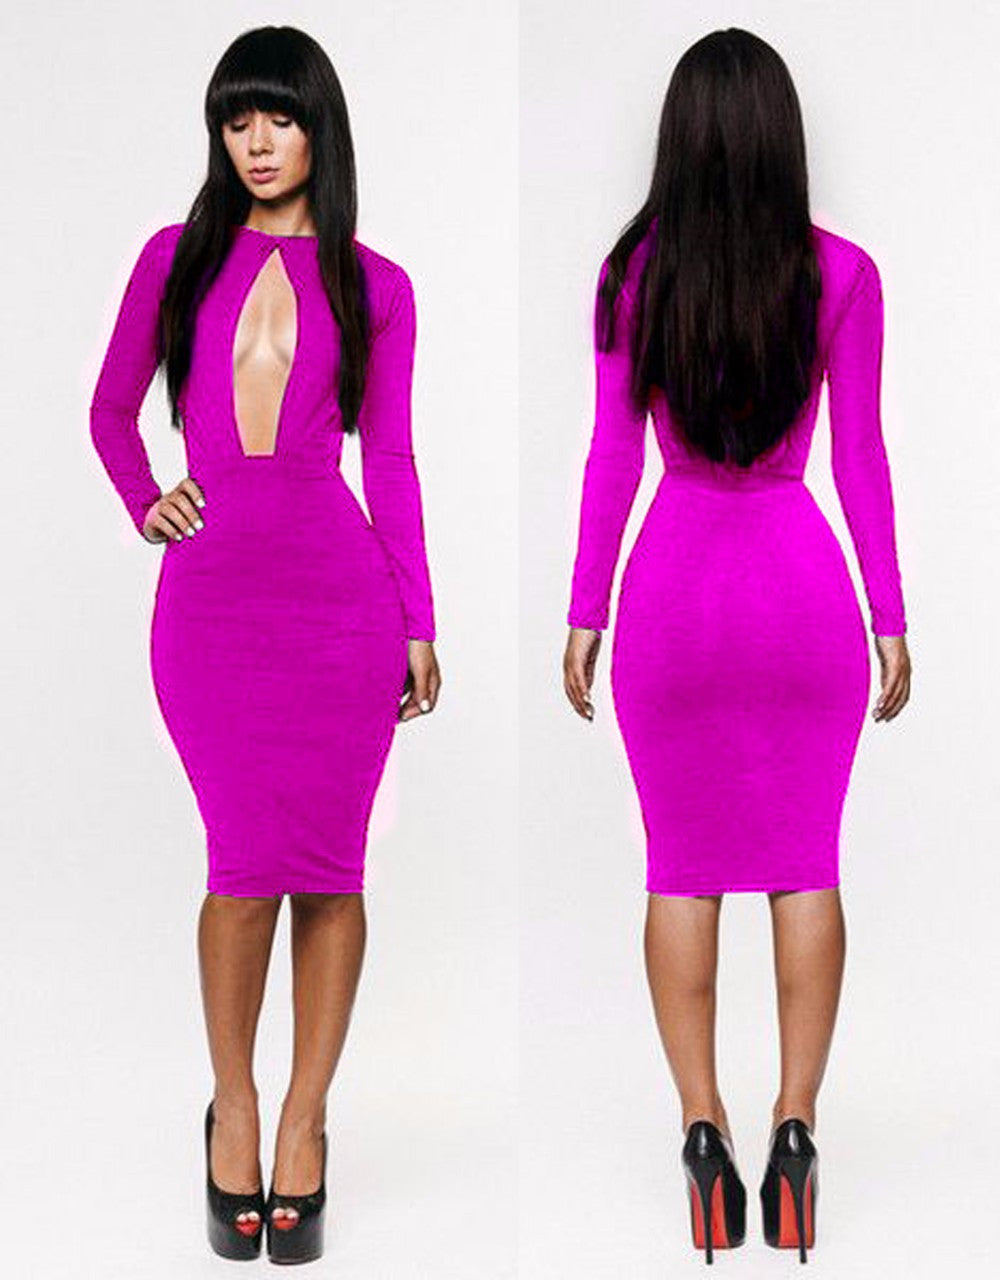 Spring Fashion Lady Bandage Long sleeve party robe dress - Sins & Temptations